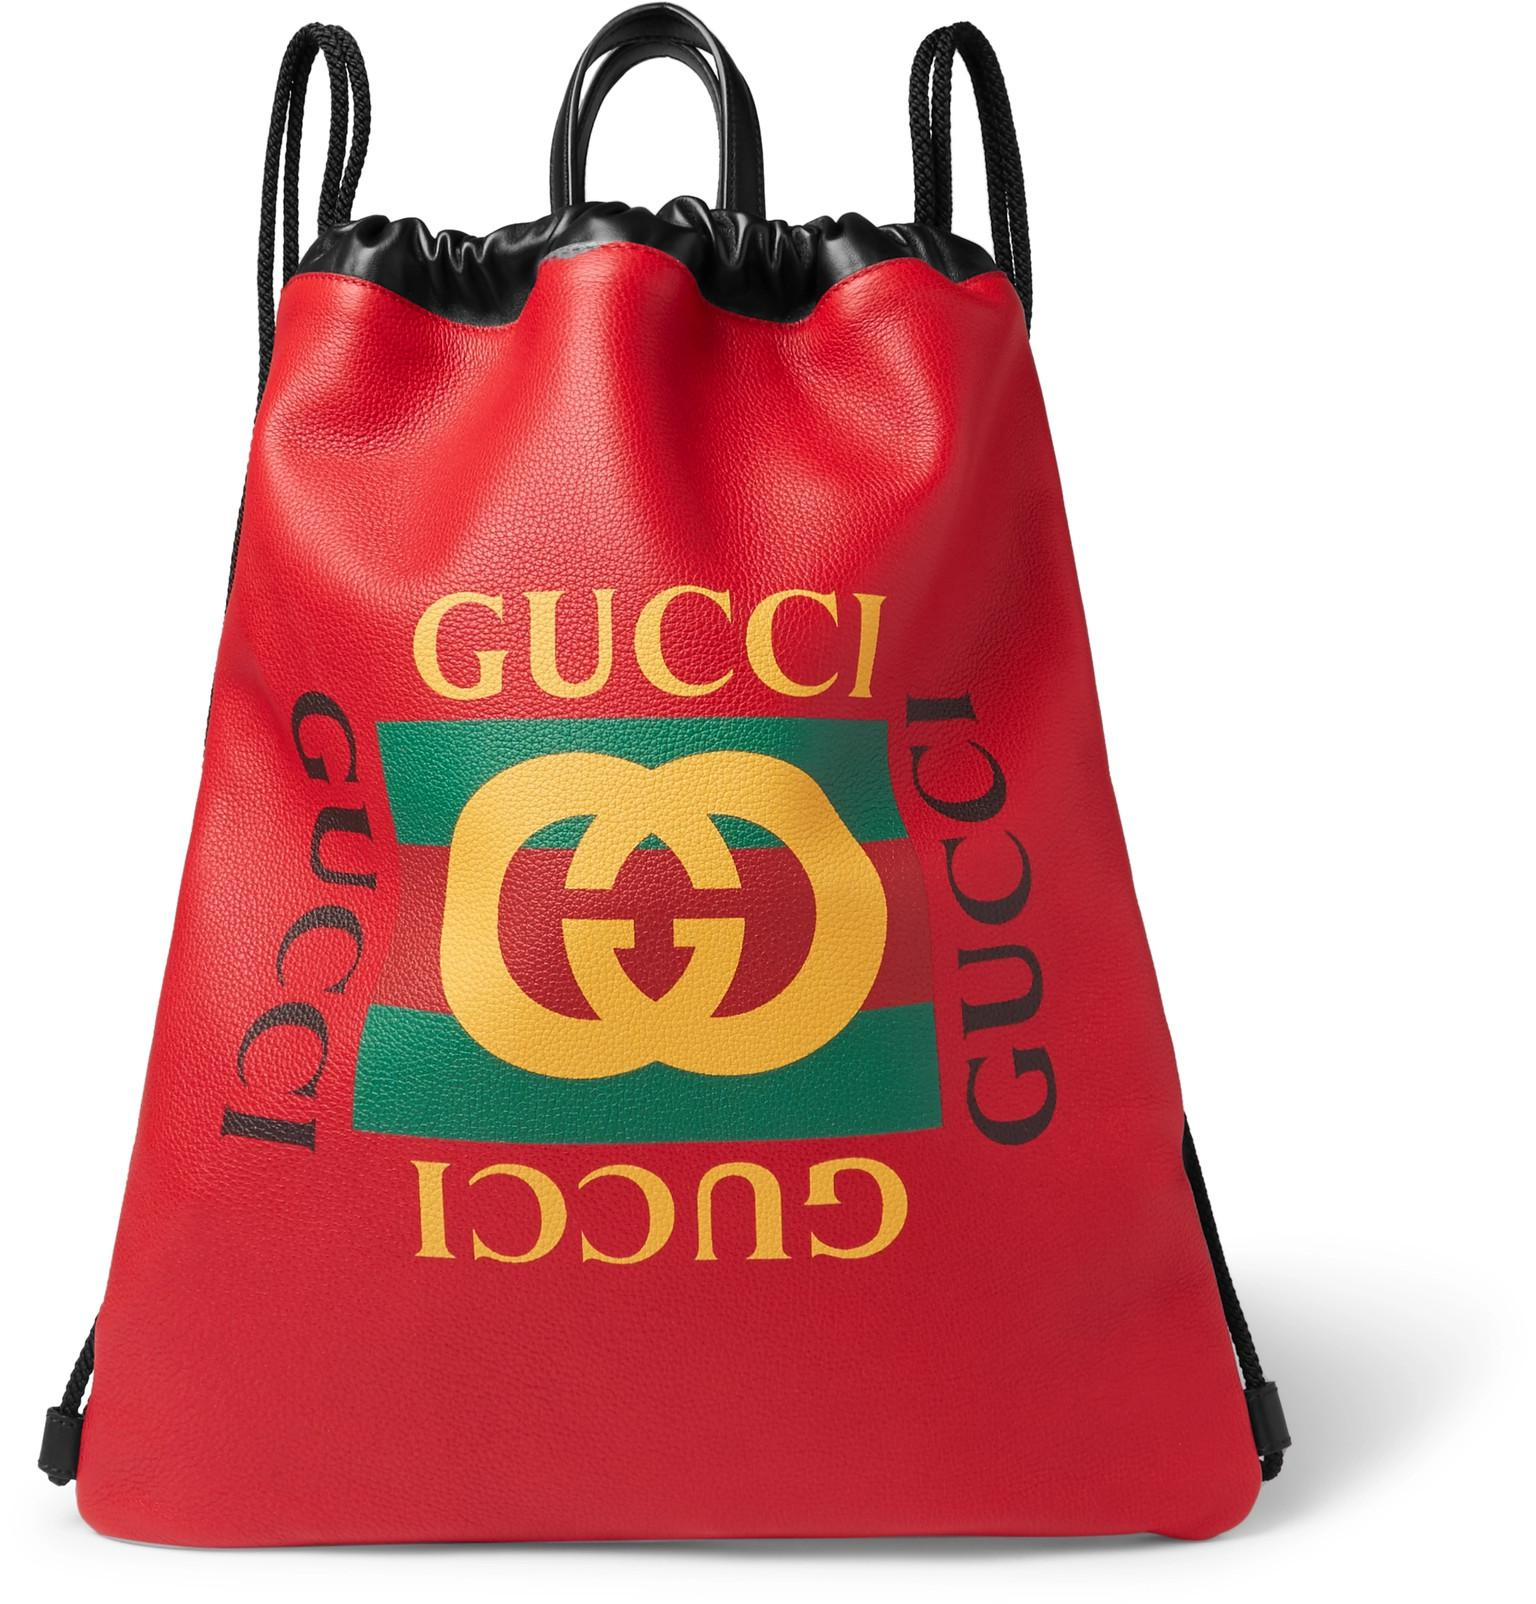 6a712b5a9ca8 Gucci - Red Printed Leather Drawstring Backpack for Men - Lyst. View  fullscreen